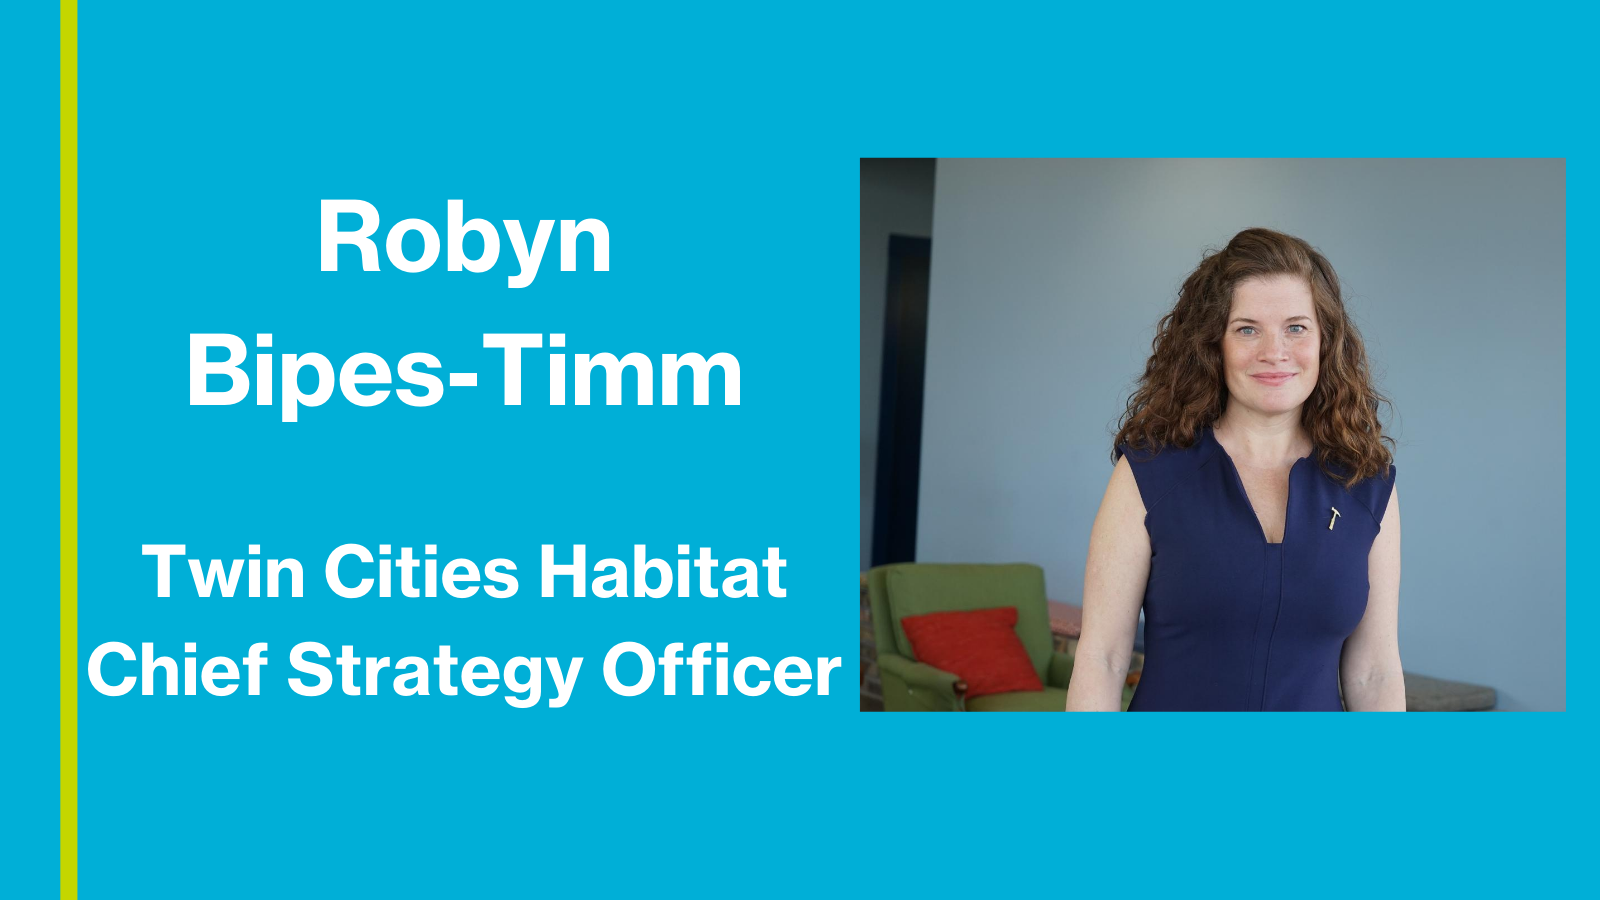 "A bright blue background with white text to the left: ""Robyn Bipes-Timm"" ""Twin Cities Habitat Chief Strategy Officer"". To the right is an image of Bipes-Timm smiling at the camera in a blue shirt, standing in front of a green chair with an orange pillow in the office."